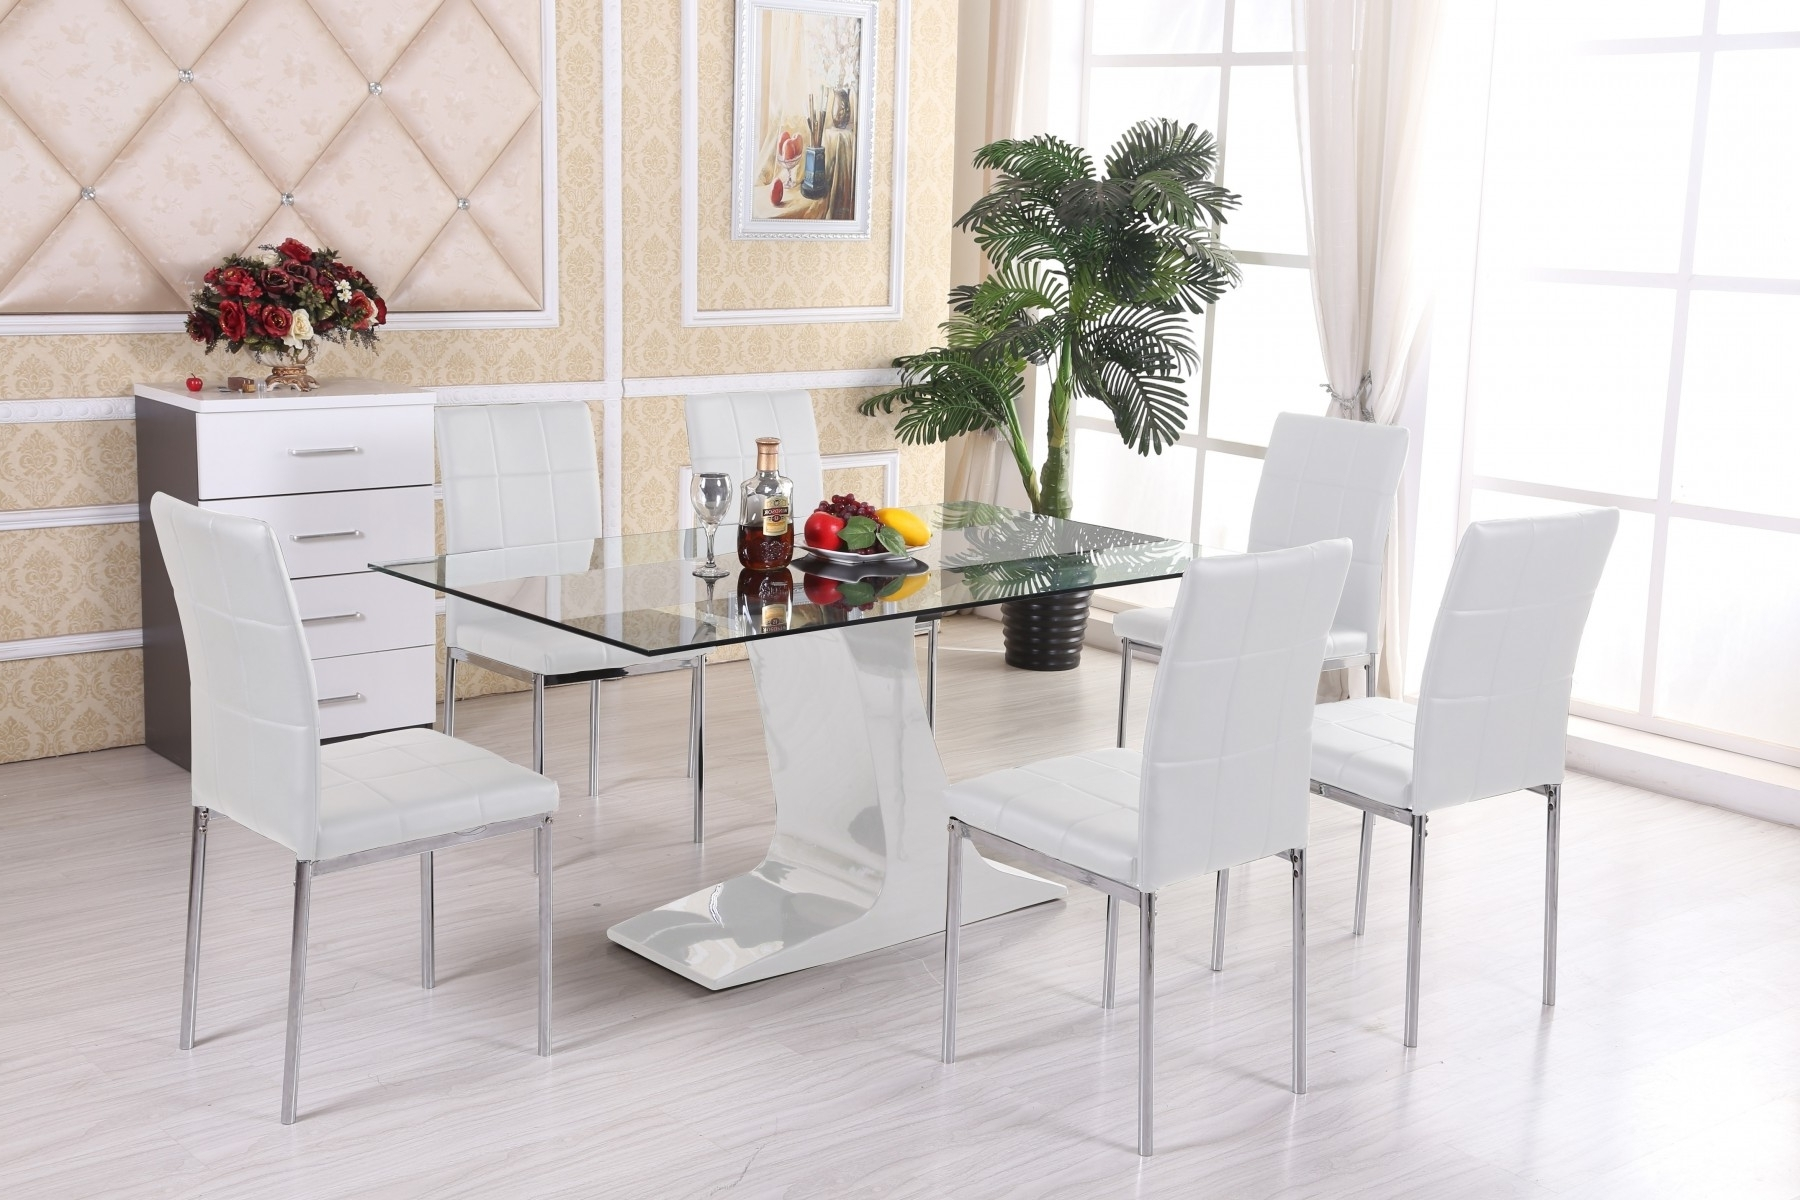 Widely Used Extendable Glass Dining Tables And 6 Chairs Pertaining To 4 Optimal Choices In Glass Dining Table And Chairs – Blogbeen (View 16 of 25)